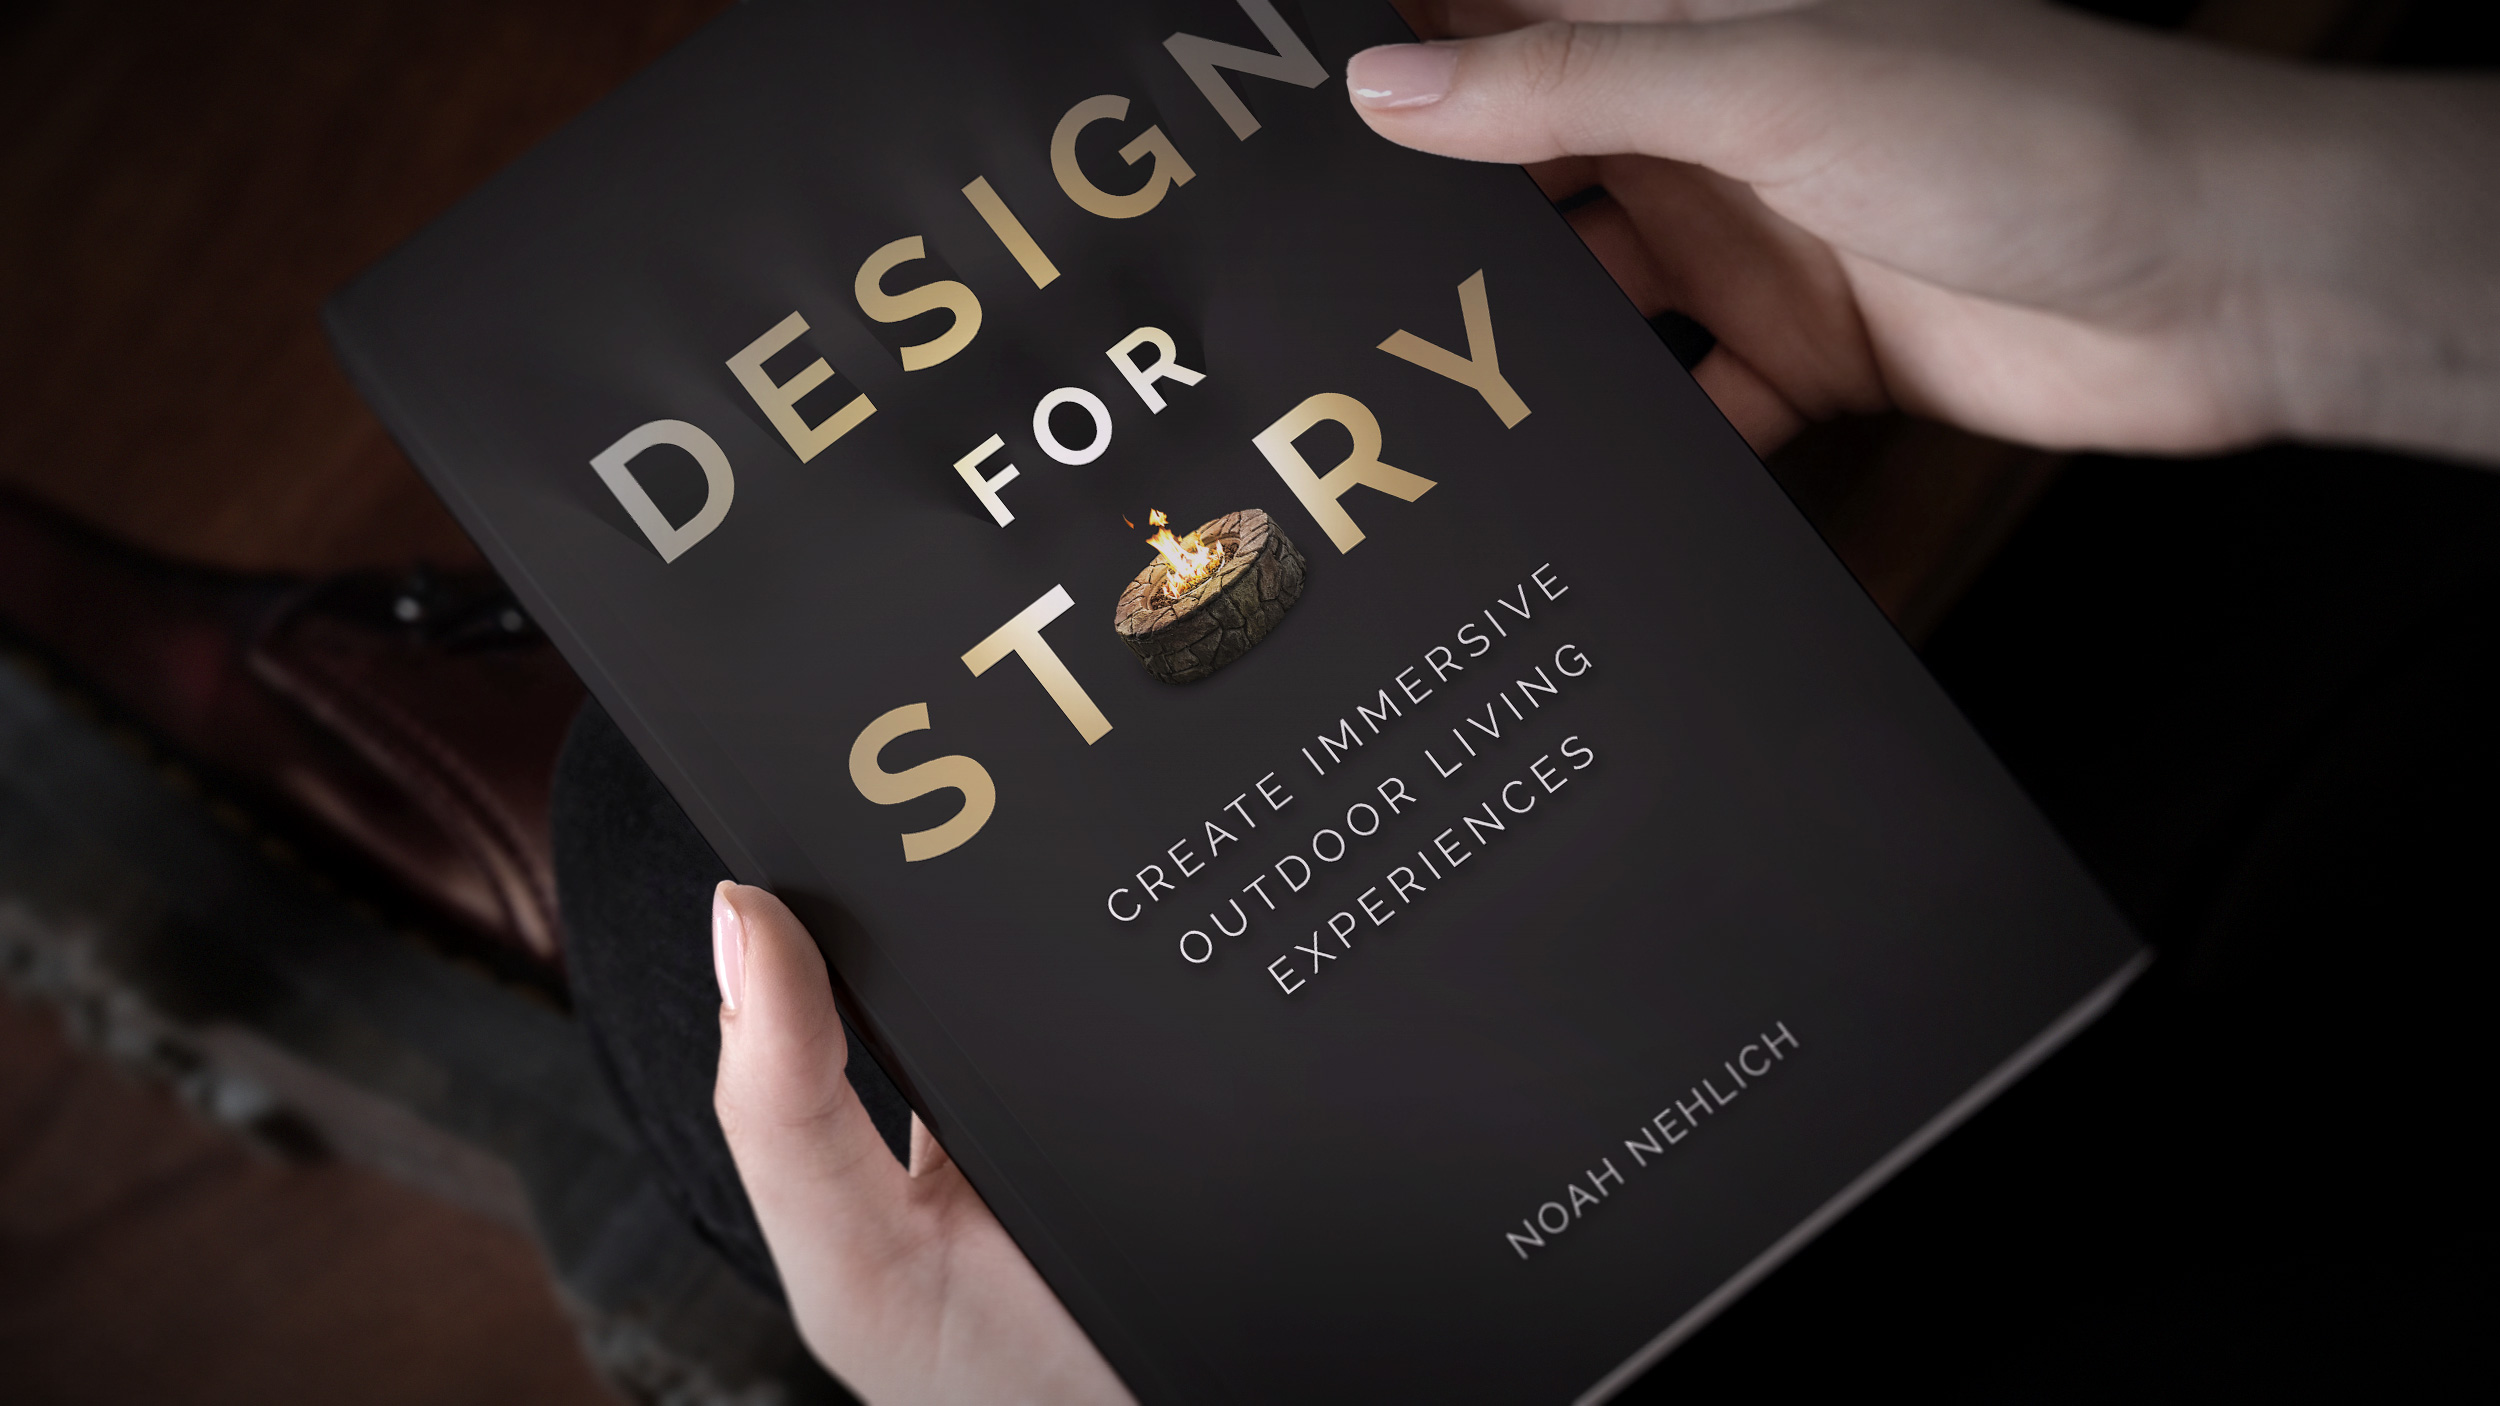 Pool Design Software Entrepreneur Noah Nehlich has written a new book - DESIGN FOR STORY focuses on the needs of todays pool designers, landscape architects and pool builders.